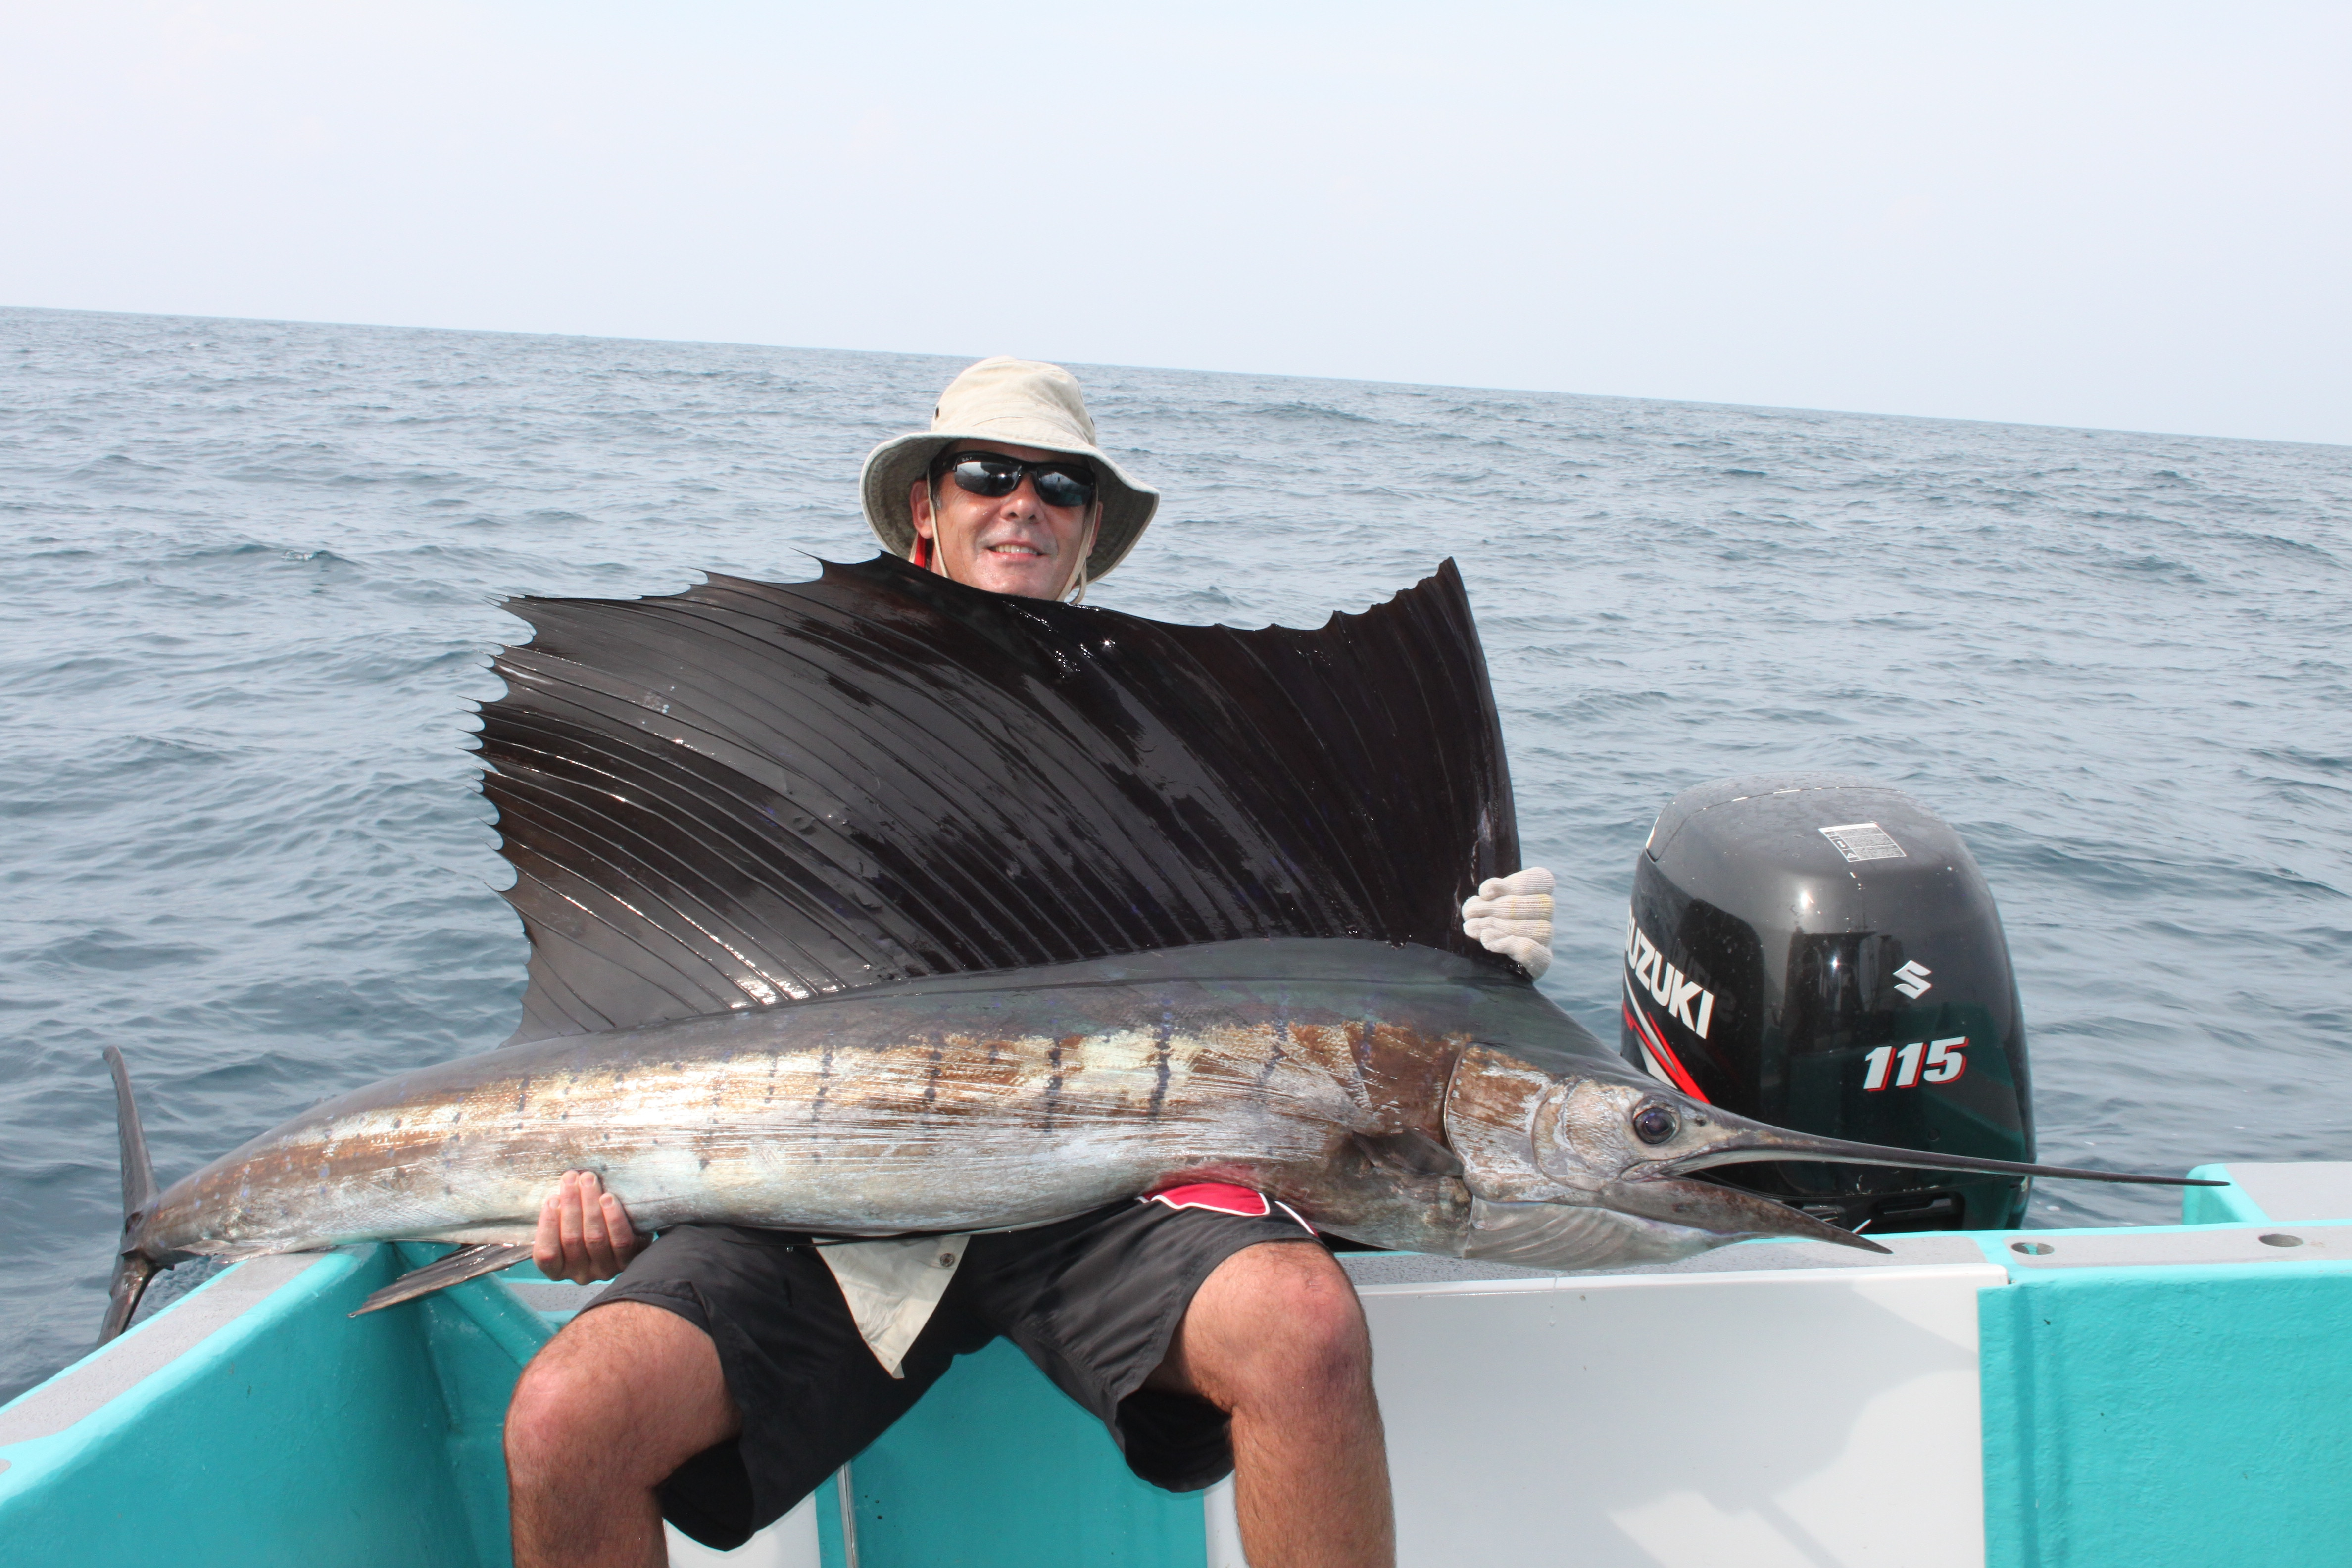 My friend Geoff with a 60 kg sailfish. Caught and released in Rompin Malaysia. Caught and released 8